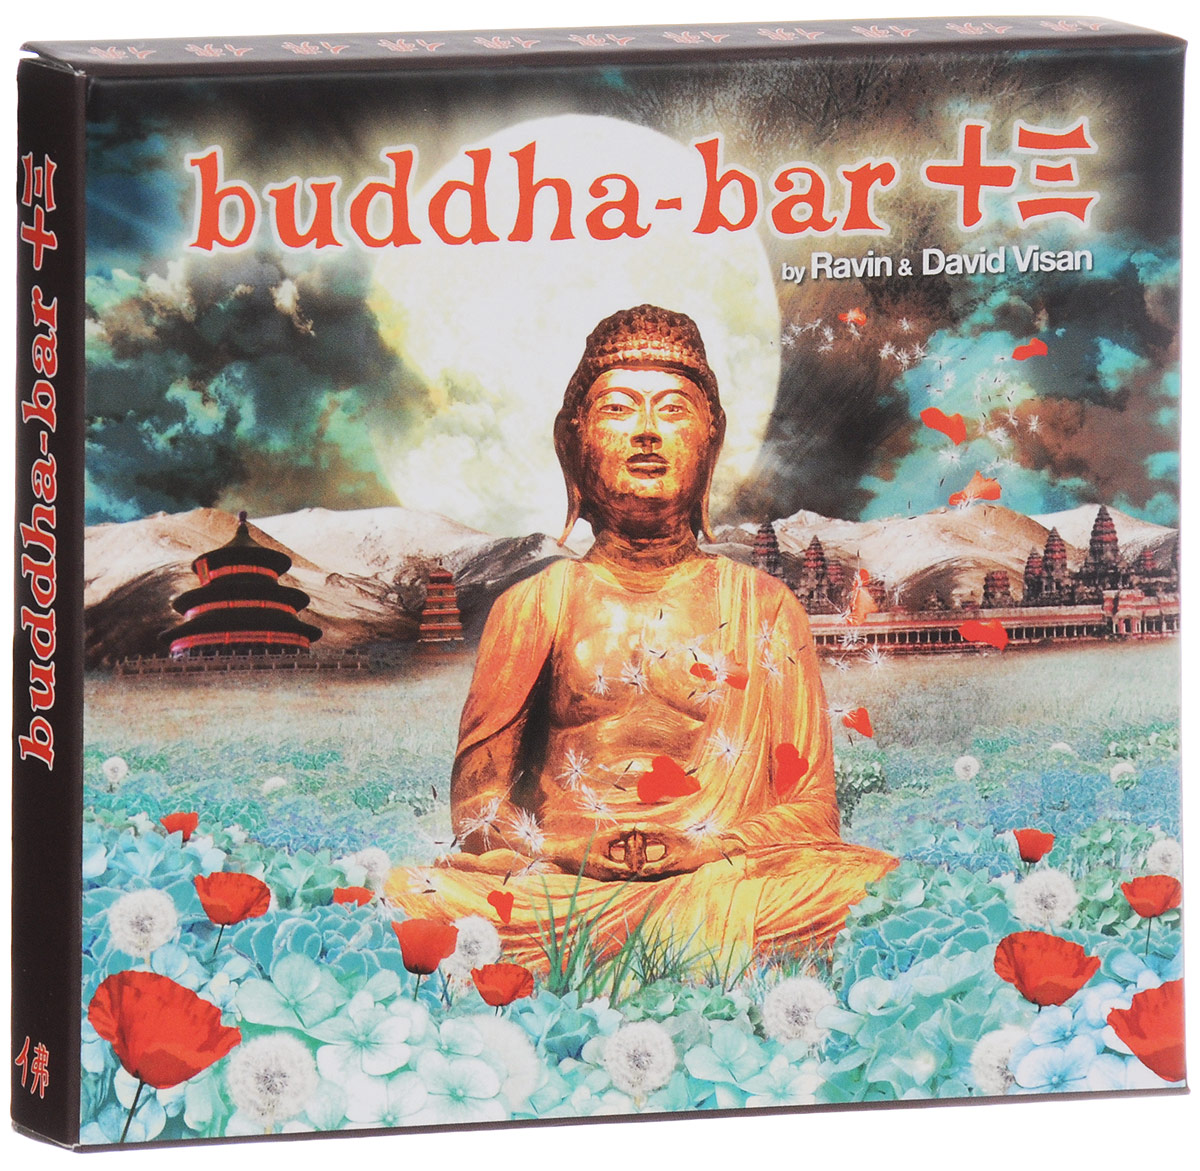 Ravin & David Visan. Buddha-Bar Vol. 13 (2 CD)